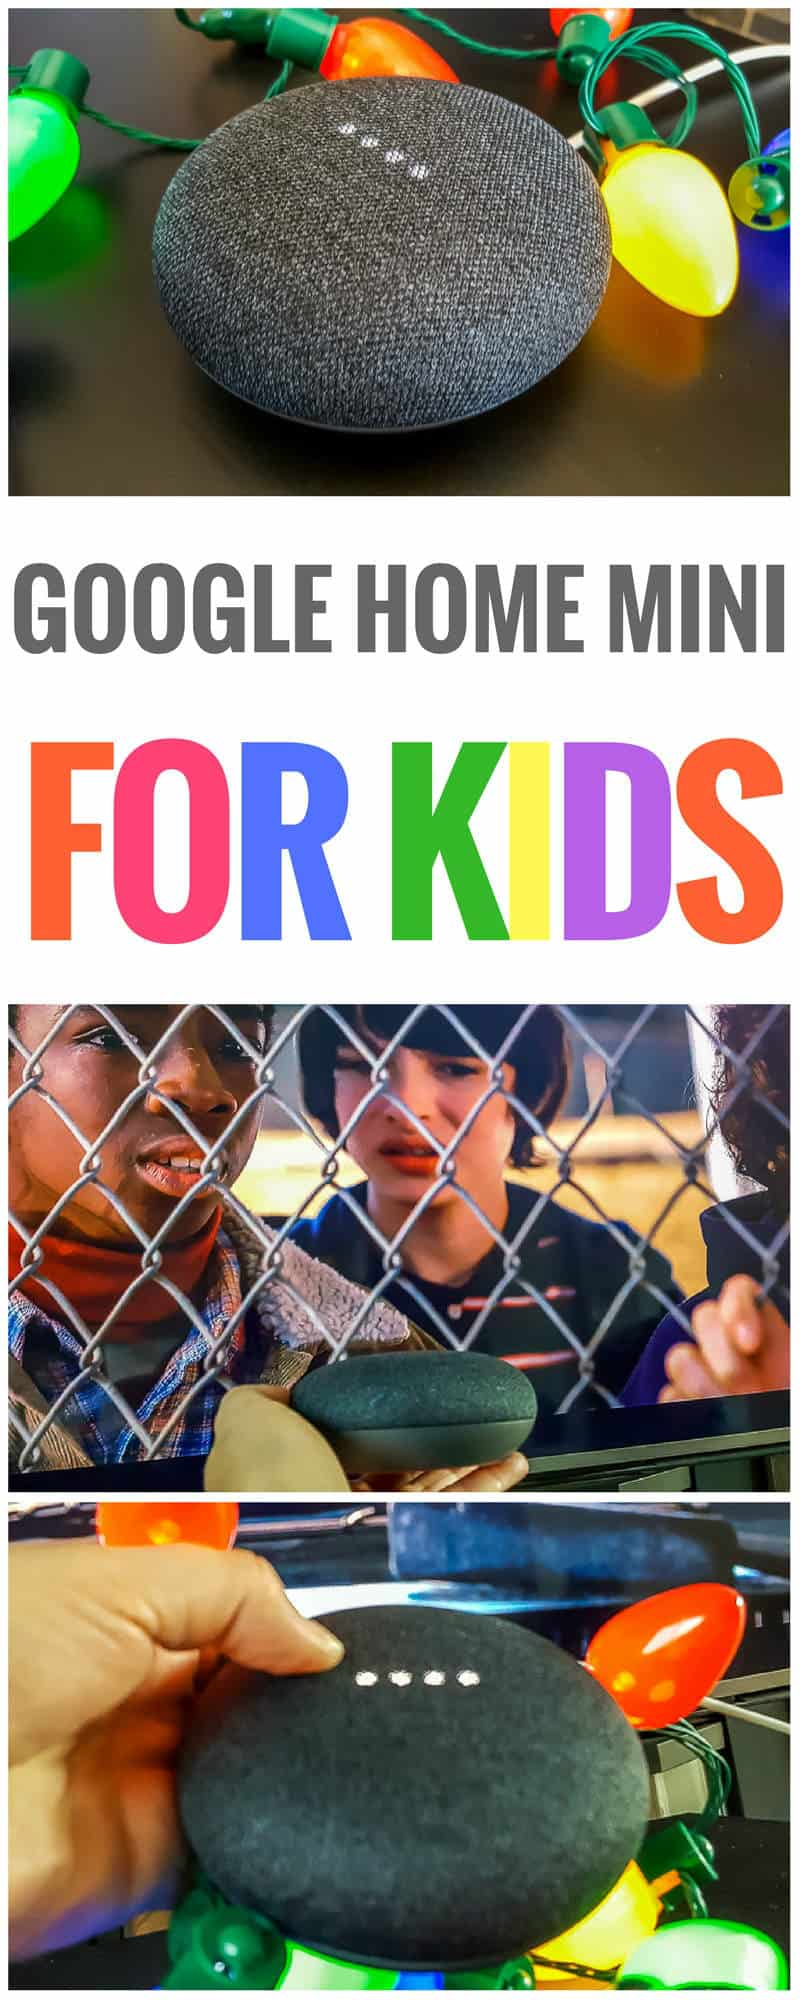 Google Home Mini for kids. These little Google devices can do a lot more than set appointments and help you with your calendar. Google Assistant is a lot of fun for kids, with fun games like Akinator, music at their command, and much more! Google Home Mini hacks | Google Home Mini tips | Things to ask the Google Home Mini | Google Home Mini device | Google Home Mini ideas | Google Home Mini for kids | Google Mini Tricks | what to do with the Google Home Mini #googlehome #madebygoogle